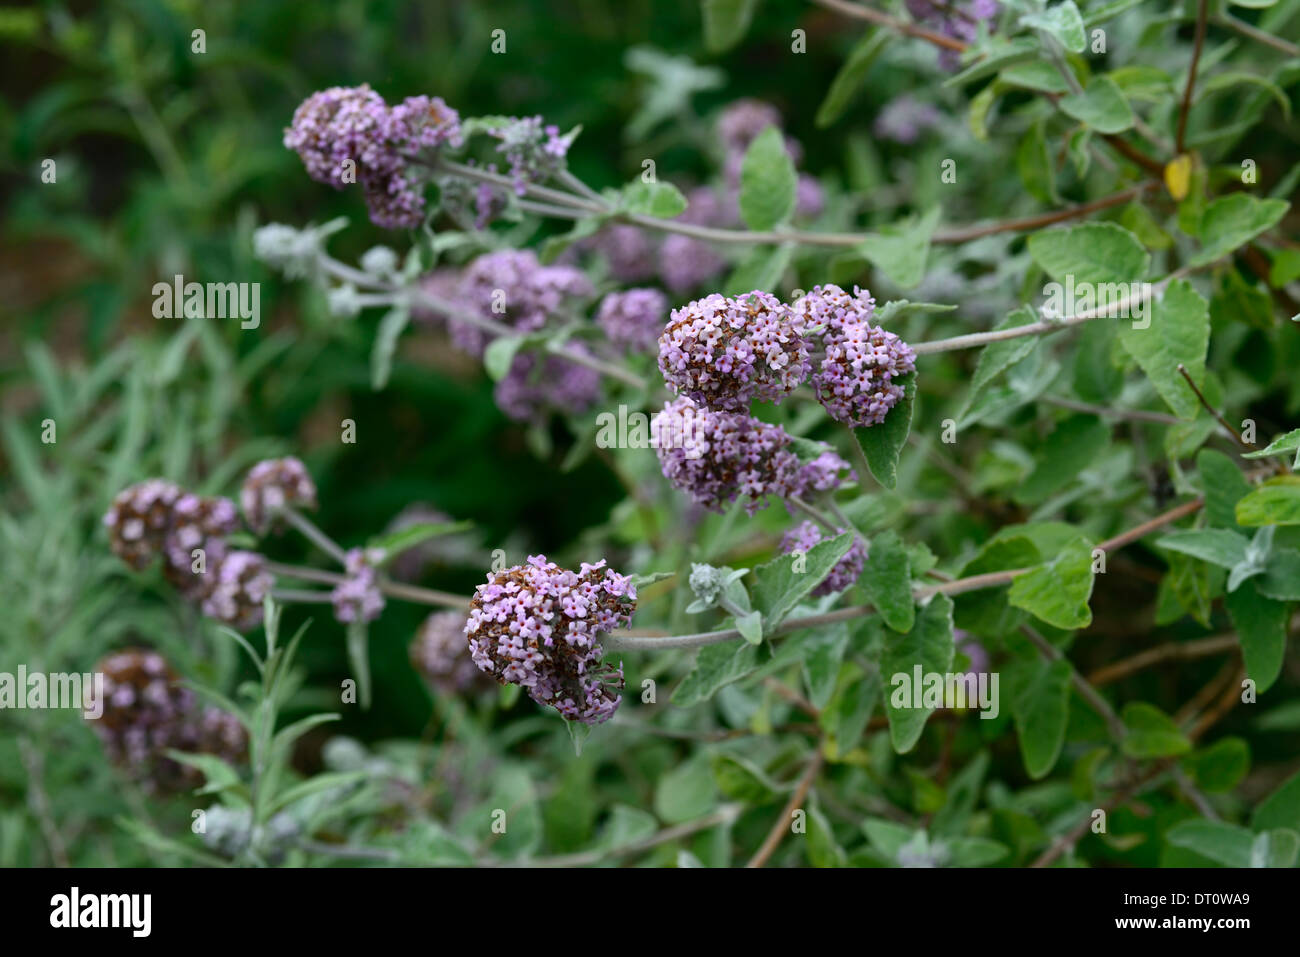 Shrubs with purple flowers pictures - Stock Photo Buddleja Crispa Hybrid Plant Portraits Purple Flowers Spires Deciduous Shrubs Summer Selective Focus Buddleja Himalayan